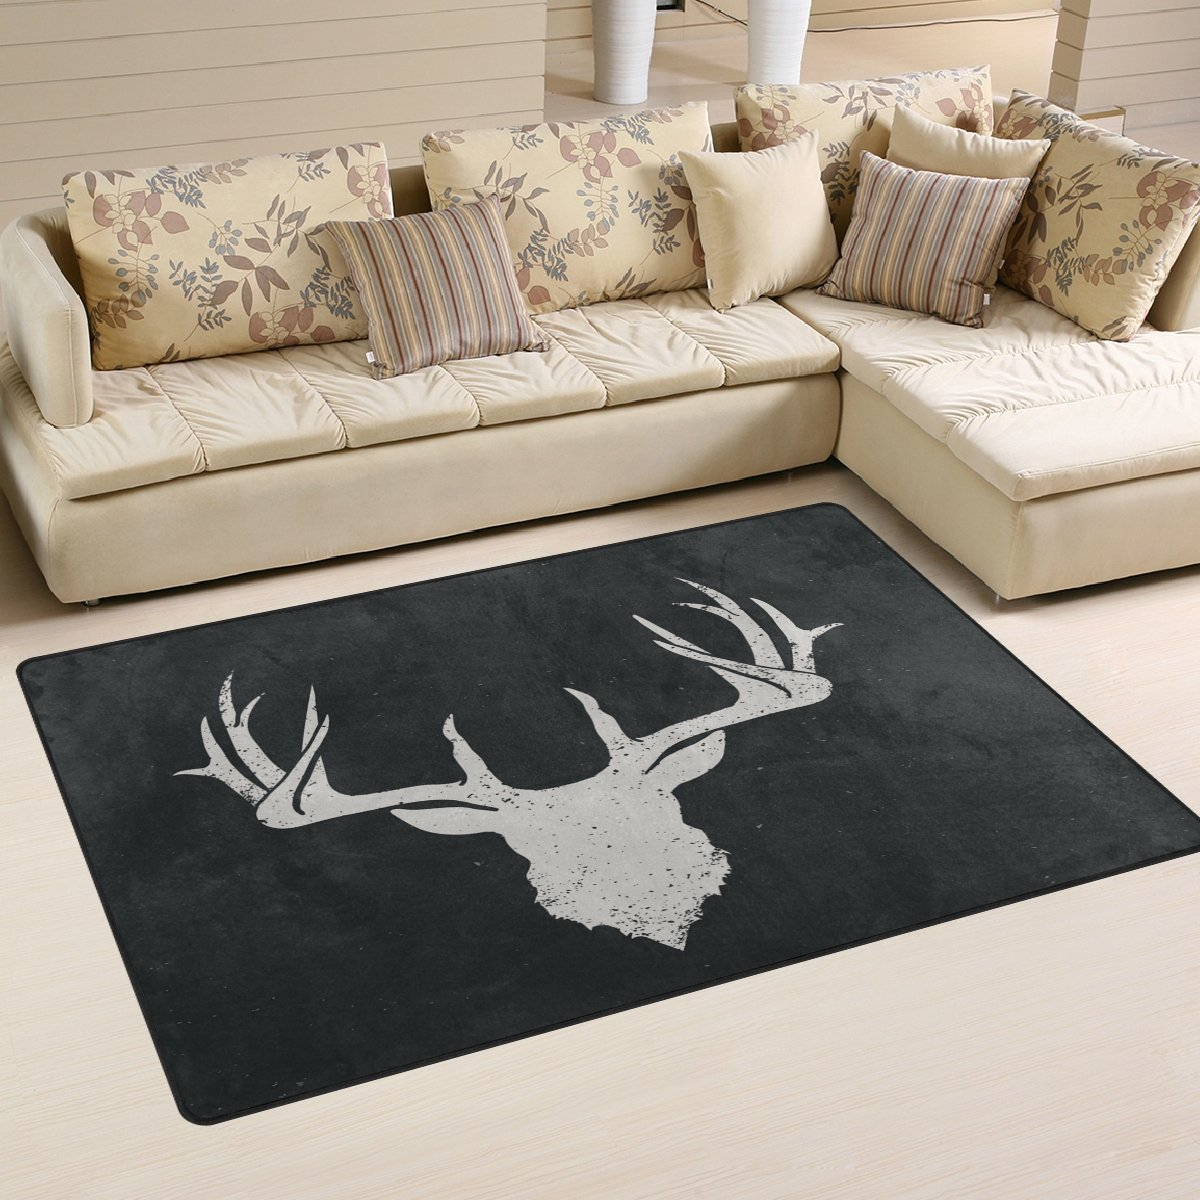 WOZO Deer Head Vintage Area Rug Rugs Non-Slip Floor Mat Doormats Living Room Bedroom 31 x 20 inches g2987742p146c161s240